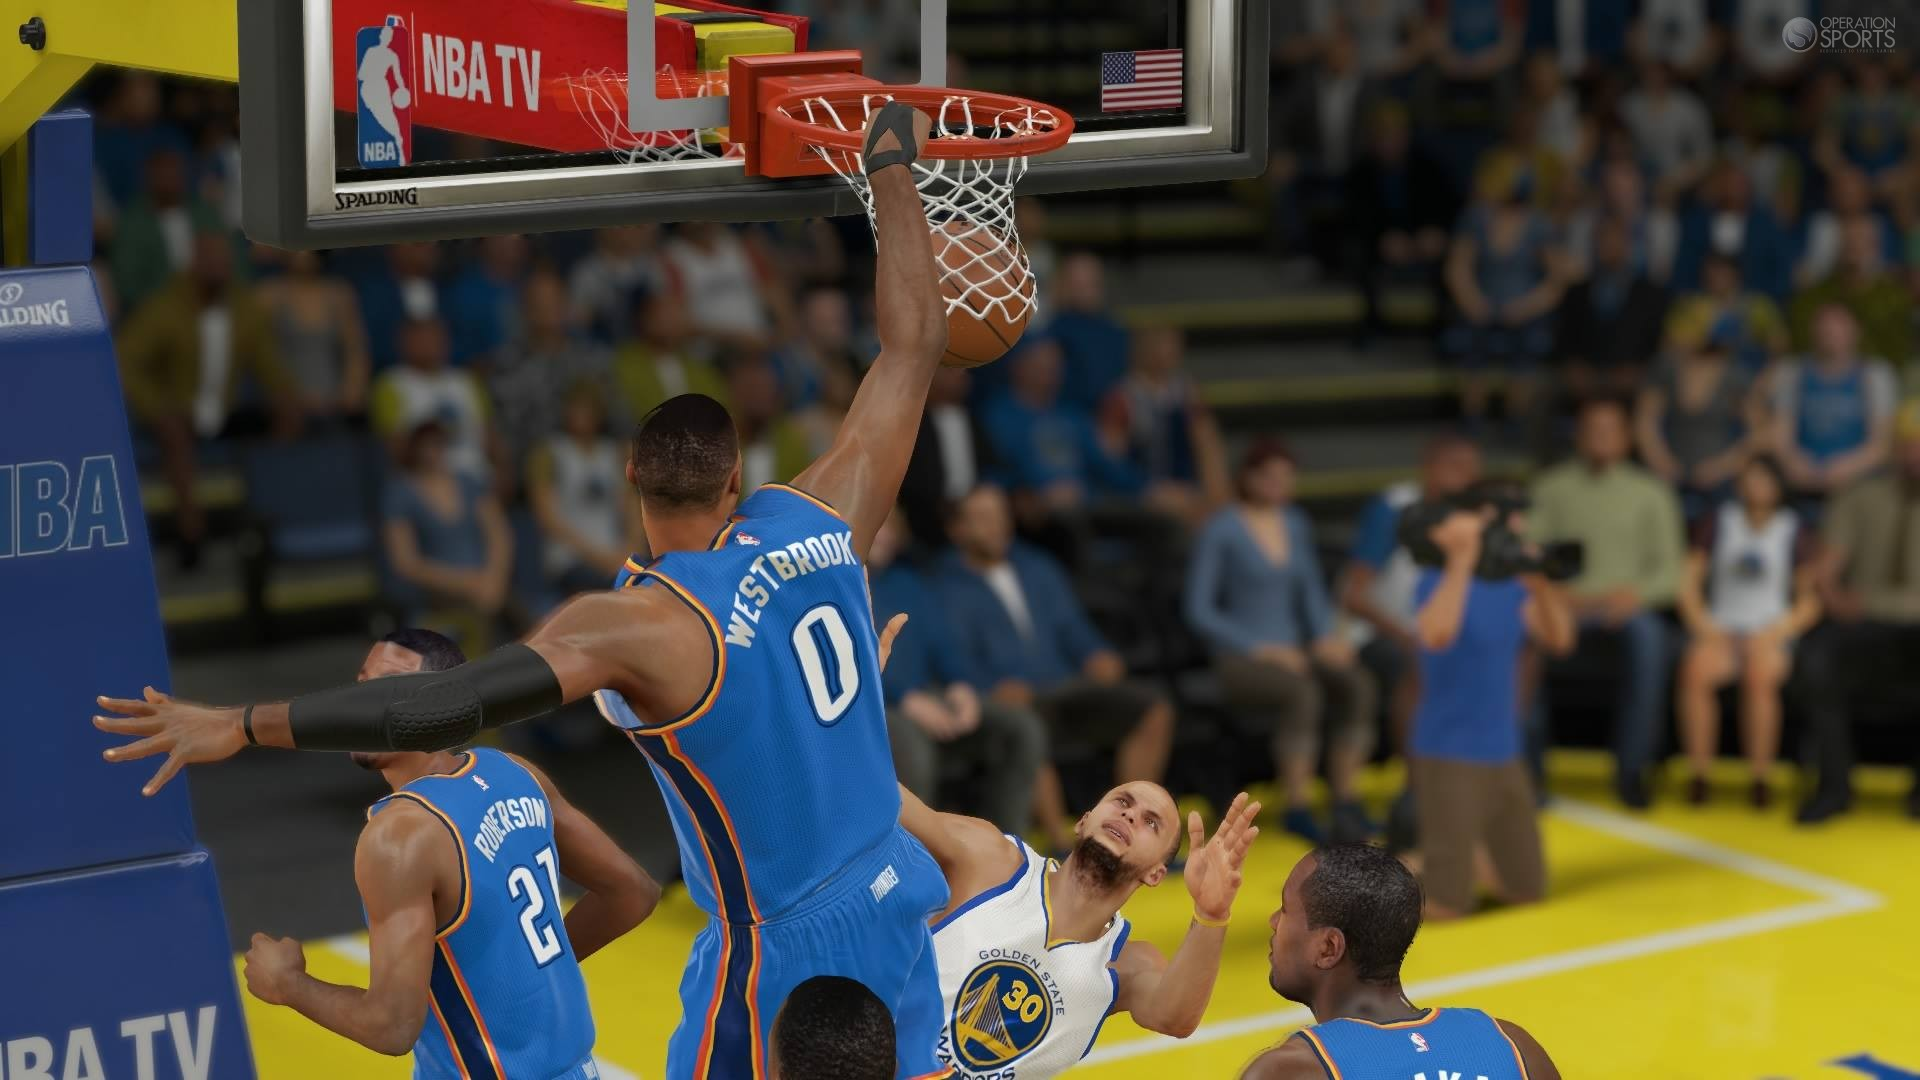 Nba 2k15 Roster Update Details 12 18 14 Rus Westbrook Joins 90 Club Operation Sports Forums